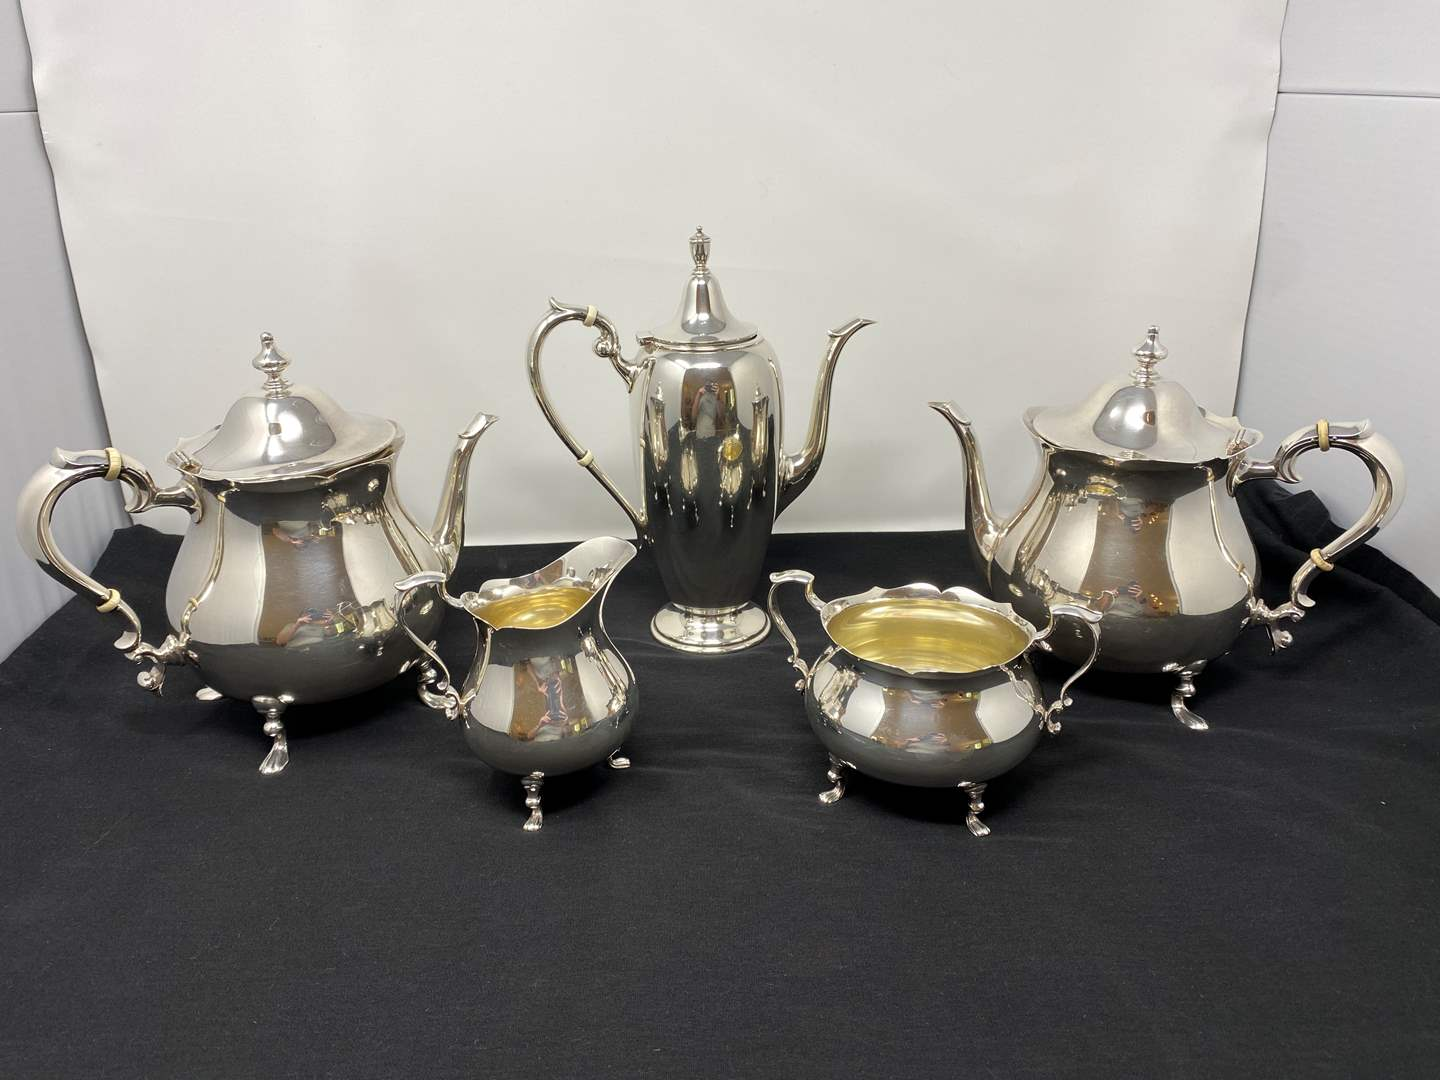 Lot # 48 - Five Piece Poole & Gorham Sterling Silver Tea Serving Set - (Total Weight - 2,460 Grams) (main image)